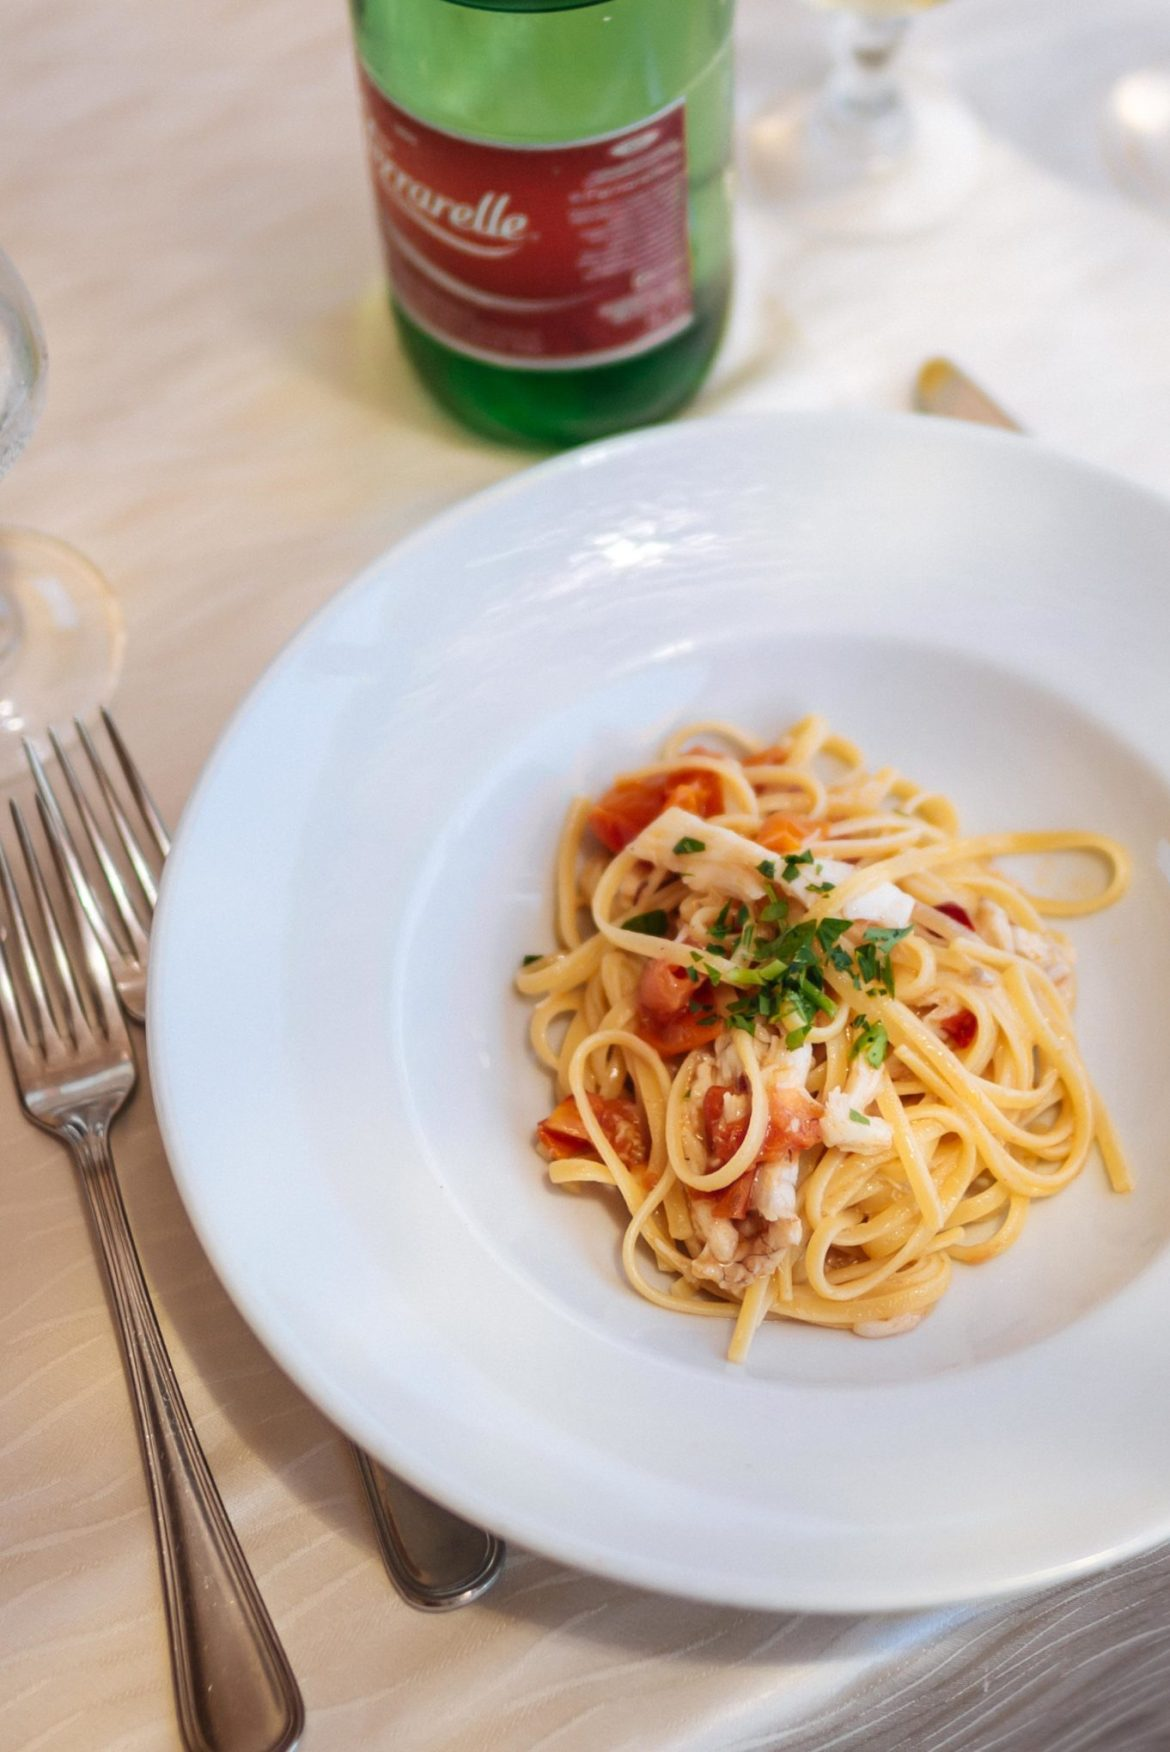 Order a plate of Italian bucatini pasta made with fresh fish in Italy or now you can make it at home. This easy recipe is a fantastic weeknight dinner recipe inspired by our trips to Italy and the Amalfi Coast. #food #pasta #recipe